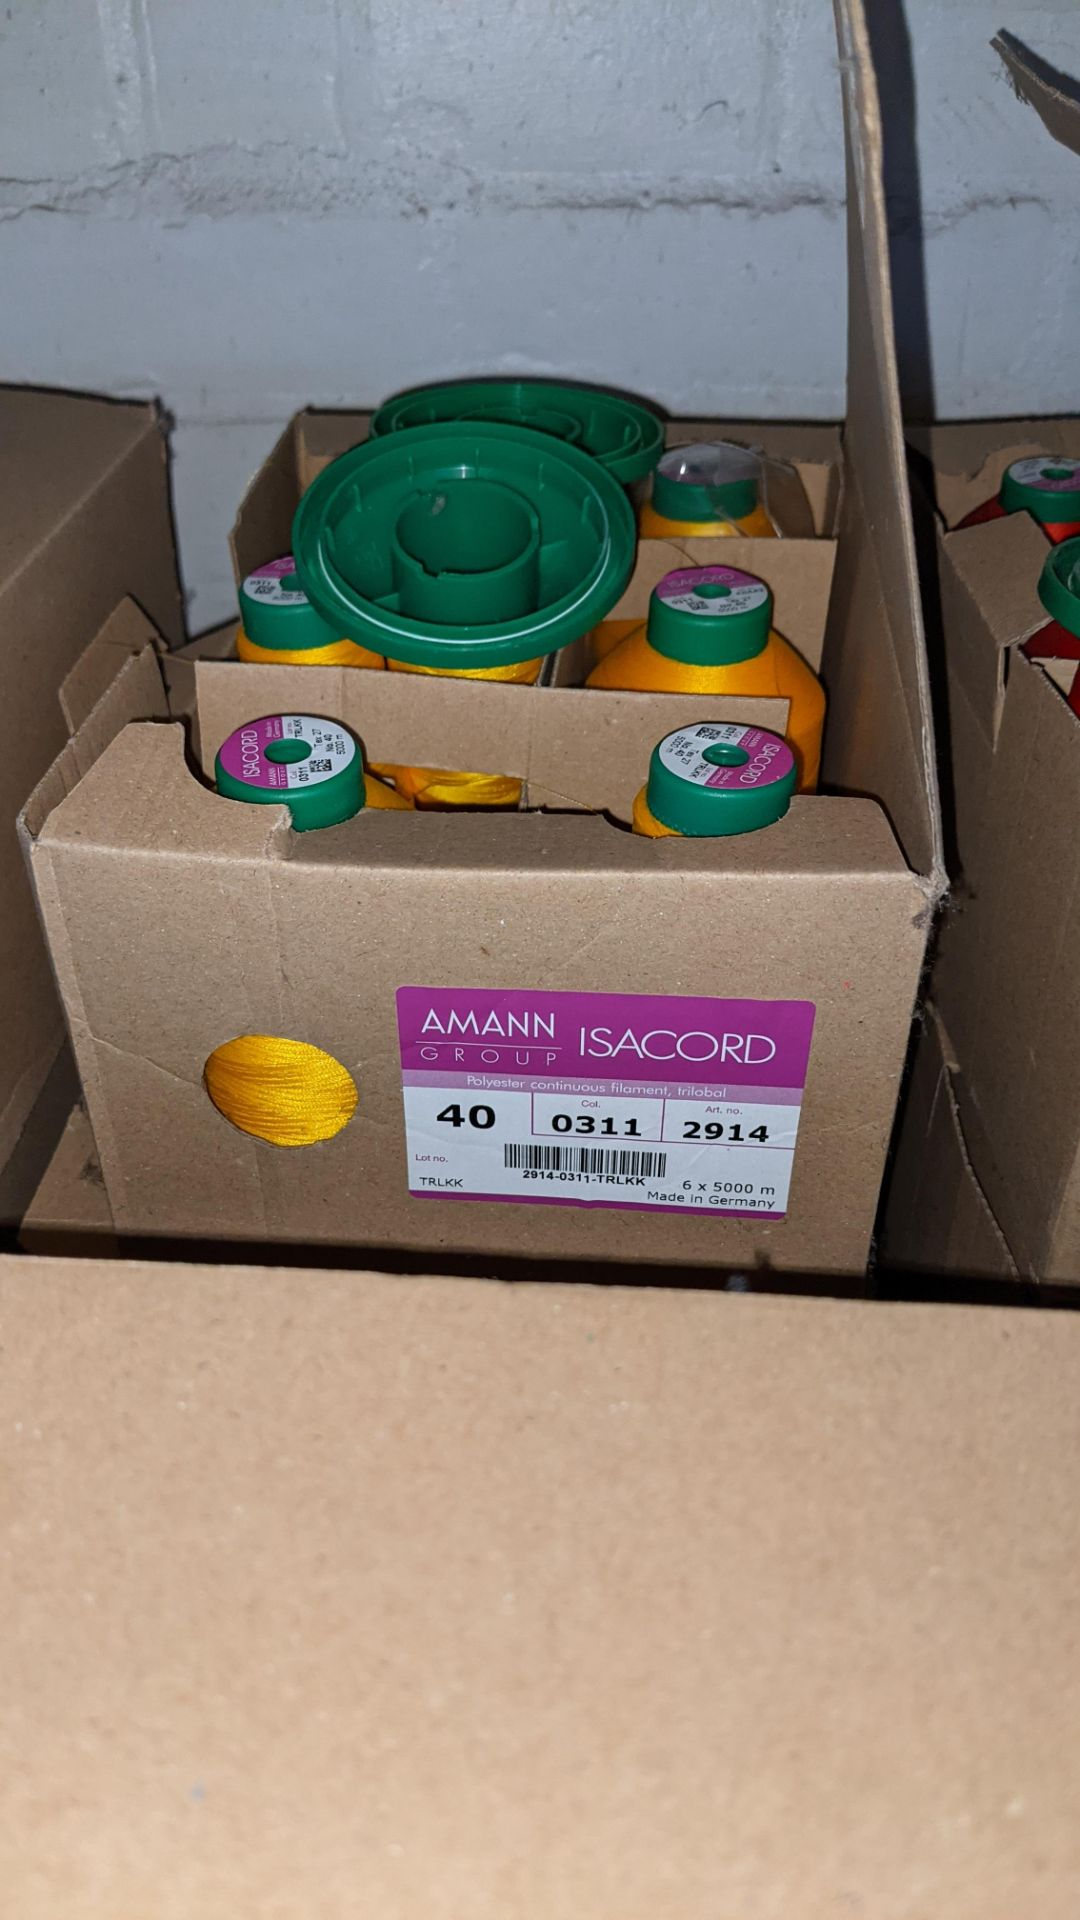 6 boxes of Ackermann & Amann Group Isacord polyester No. 40 embroidery thread - Image 6 of 6